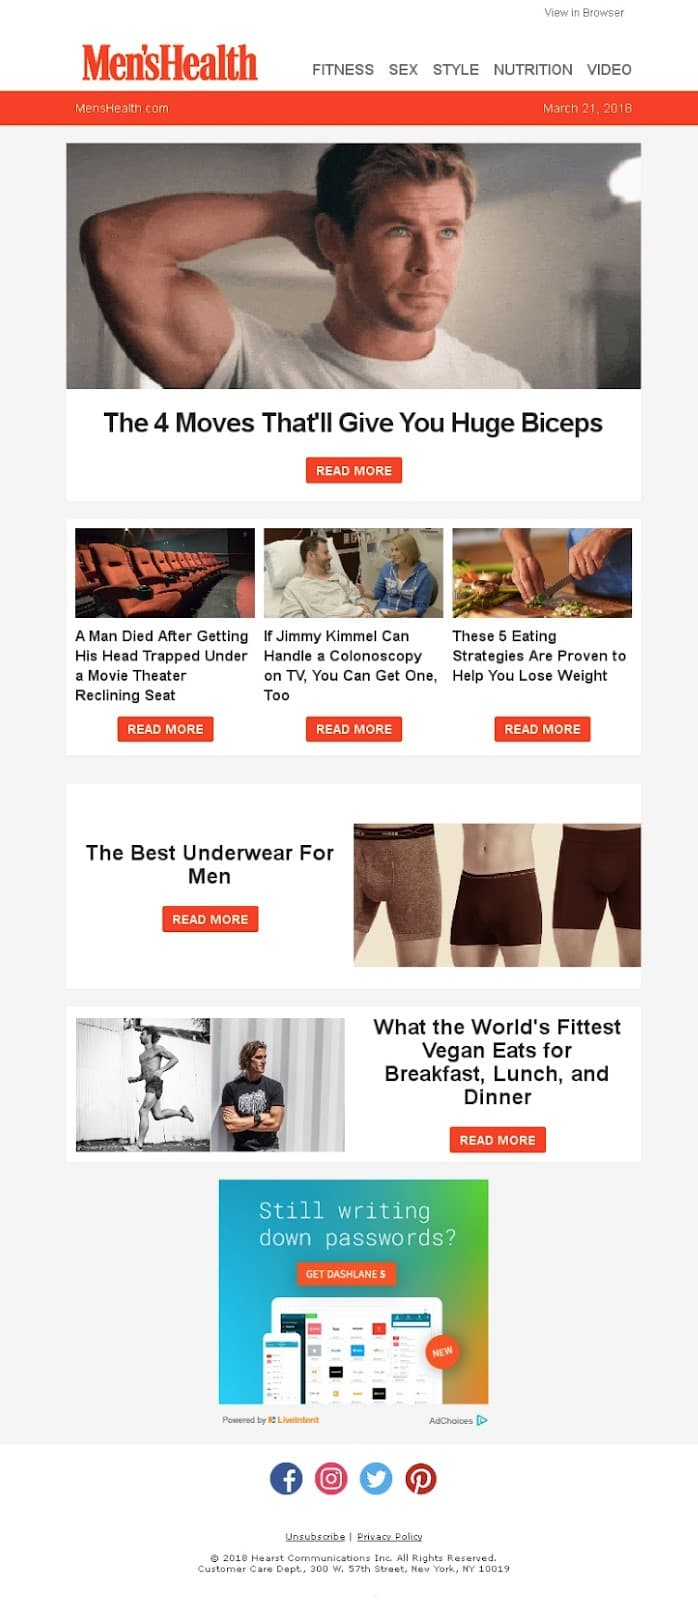 Email newsletter by Men's Health